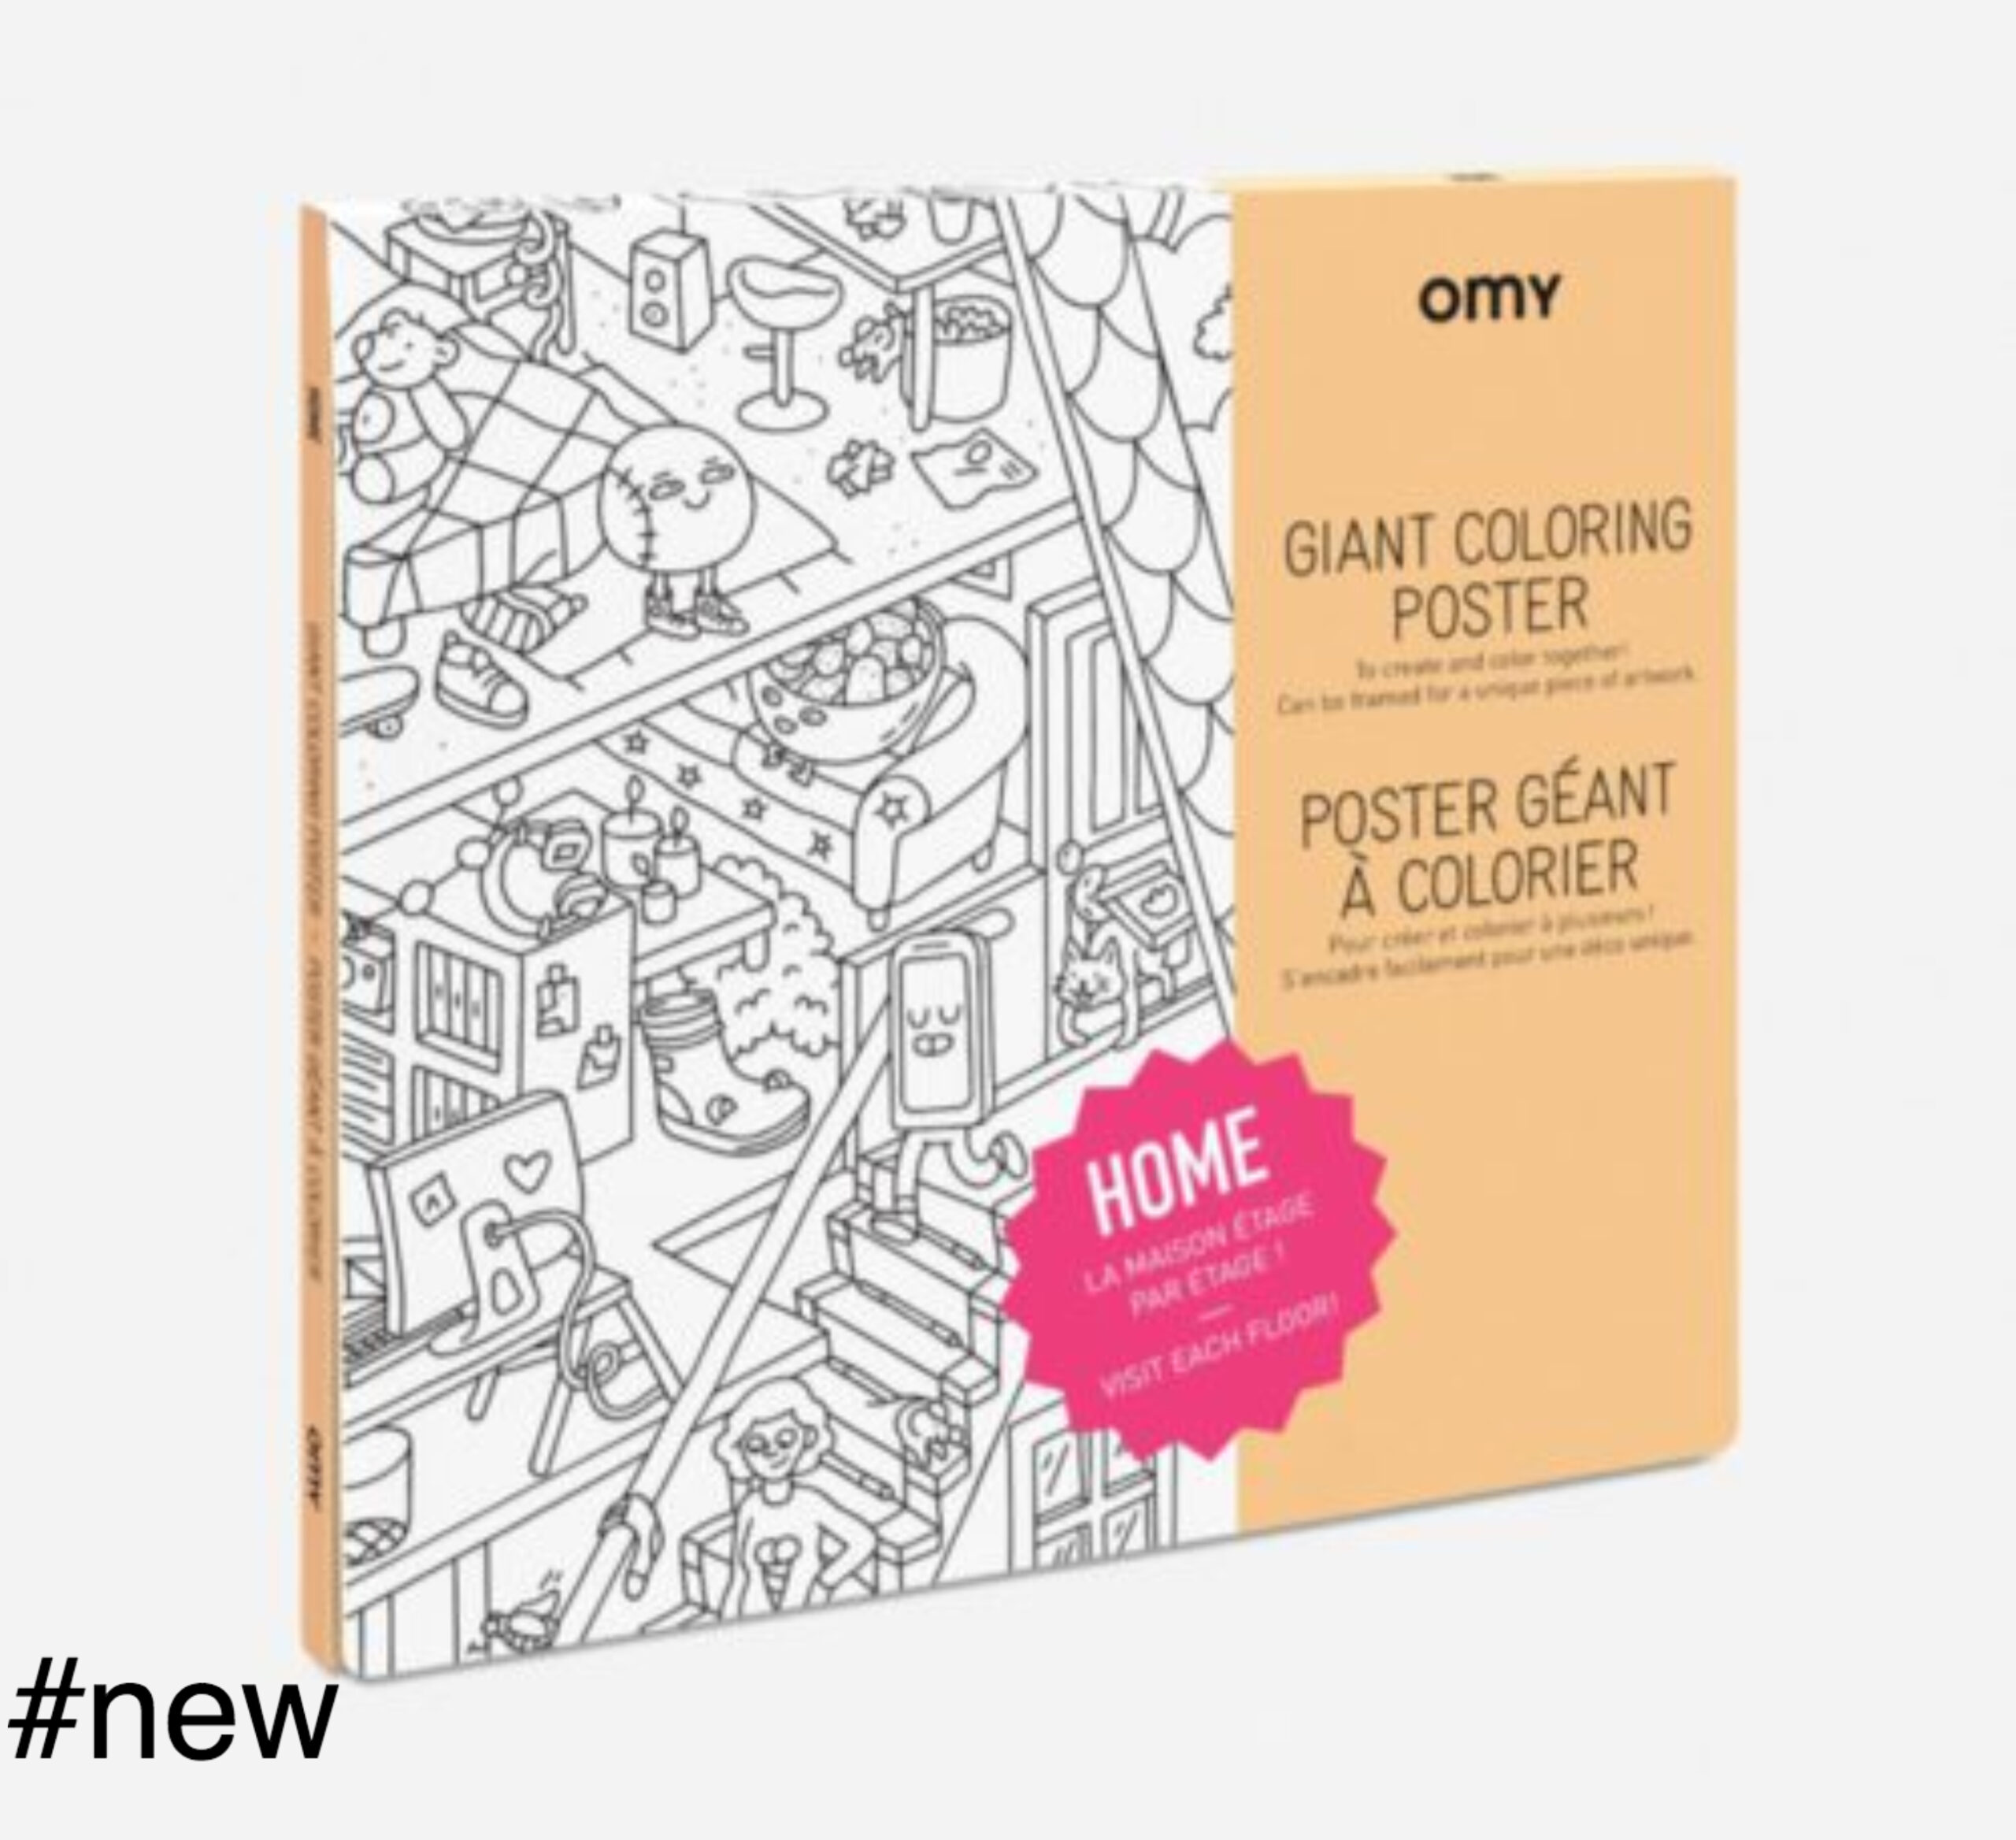 home coloring poster omy